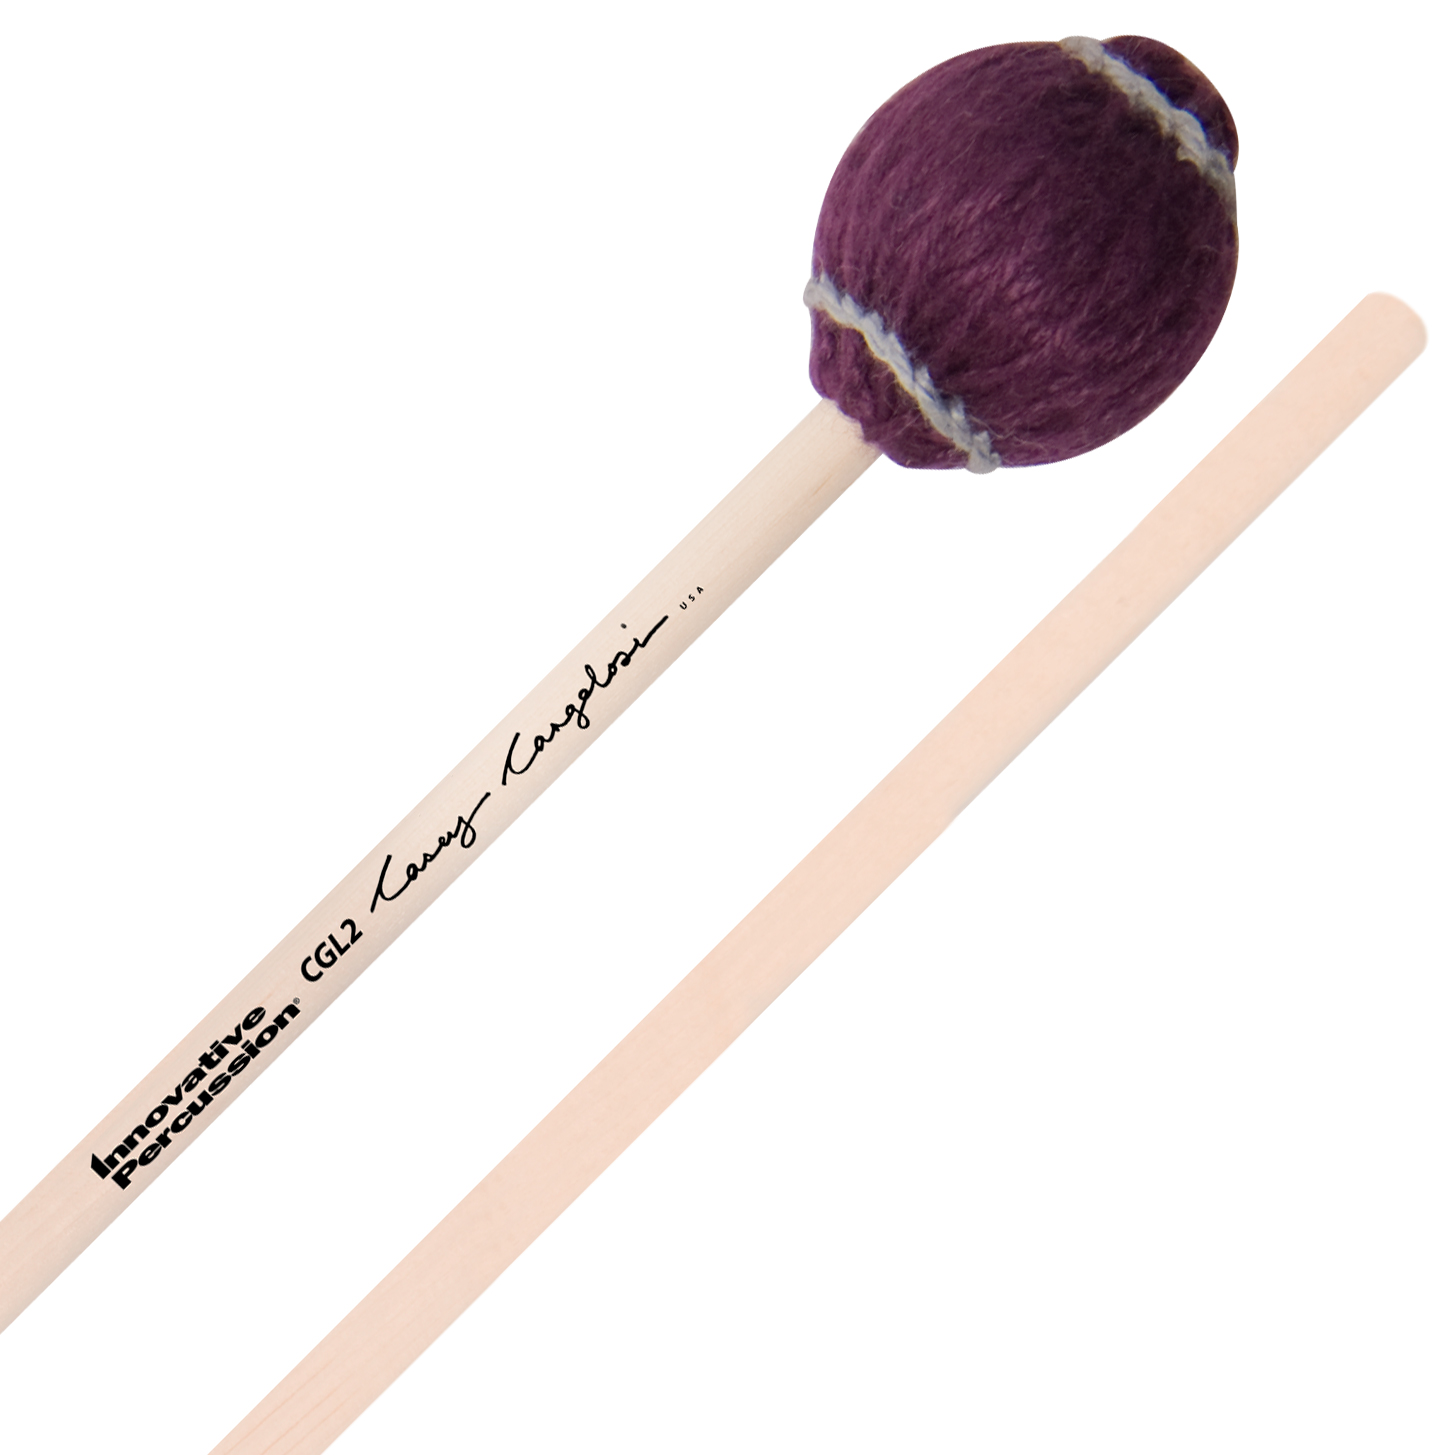 Innovative Percussion Casey Cangelosi Fast Bass Cord Marimba Mallets